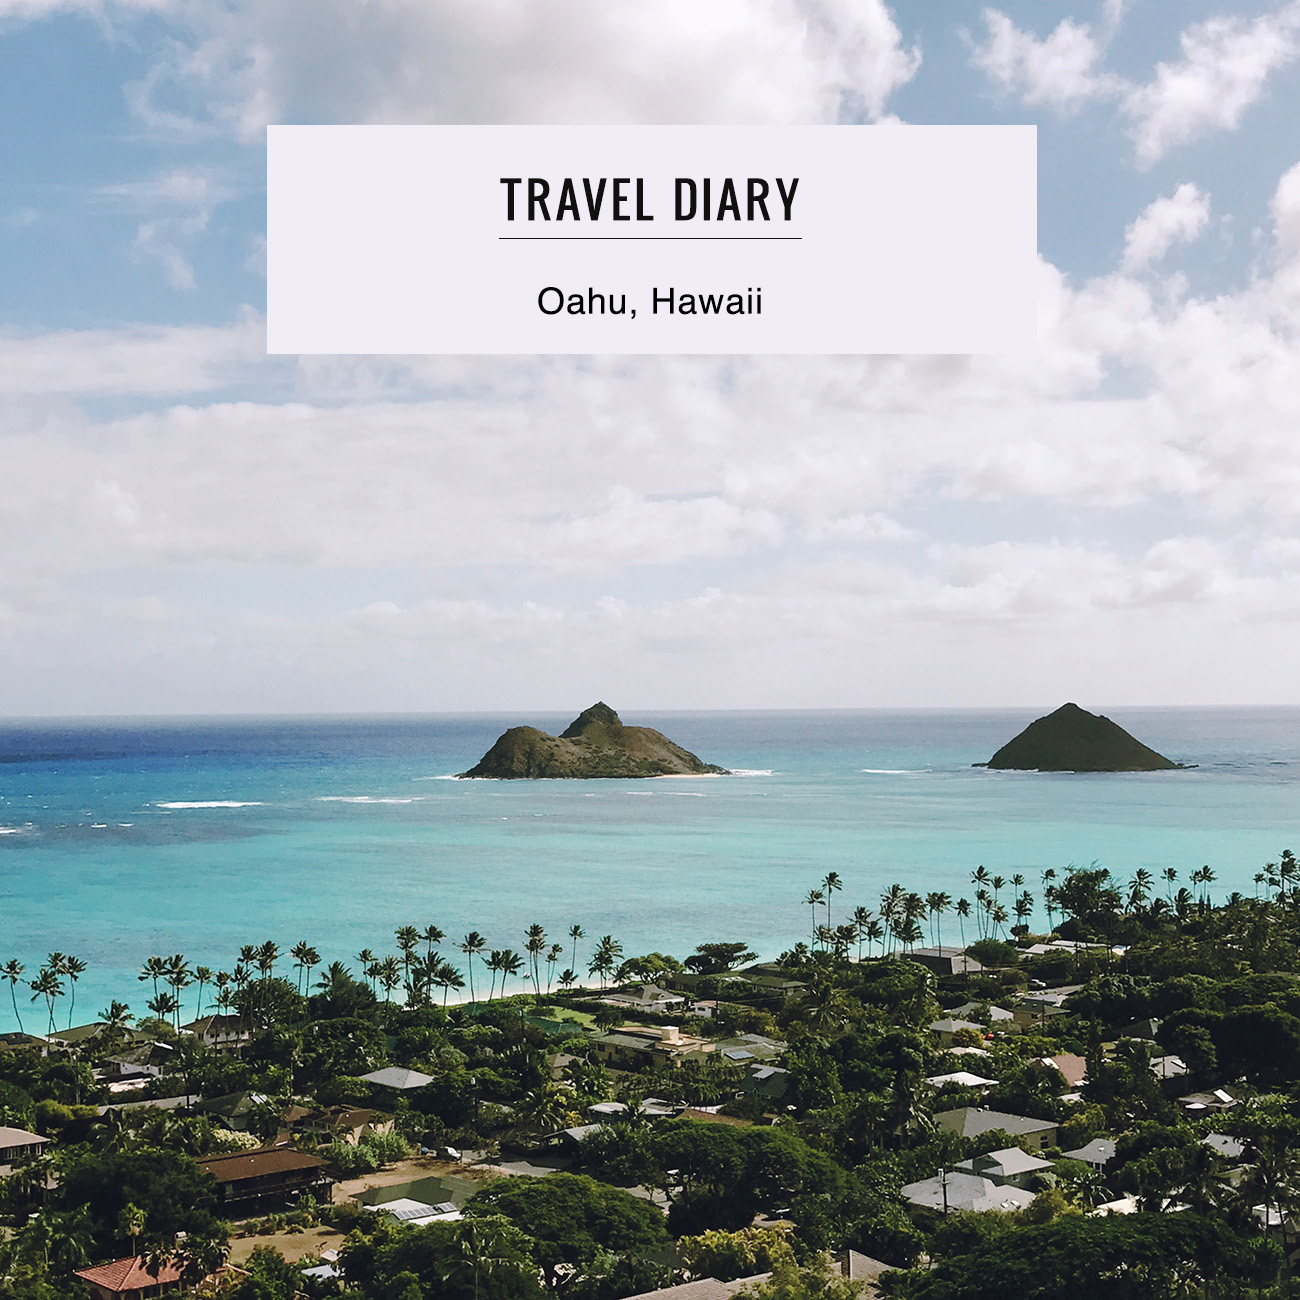 Travel Diary: Oahu Hawaii